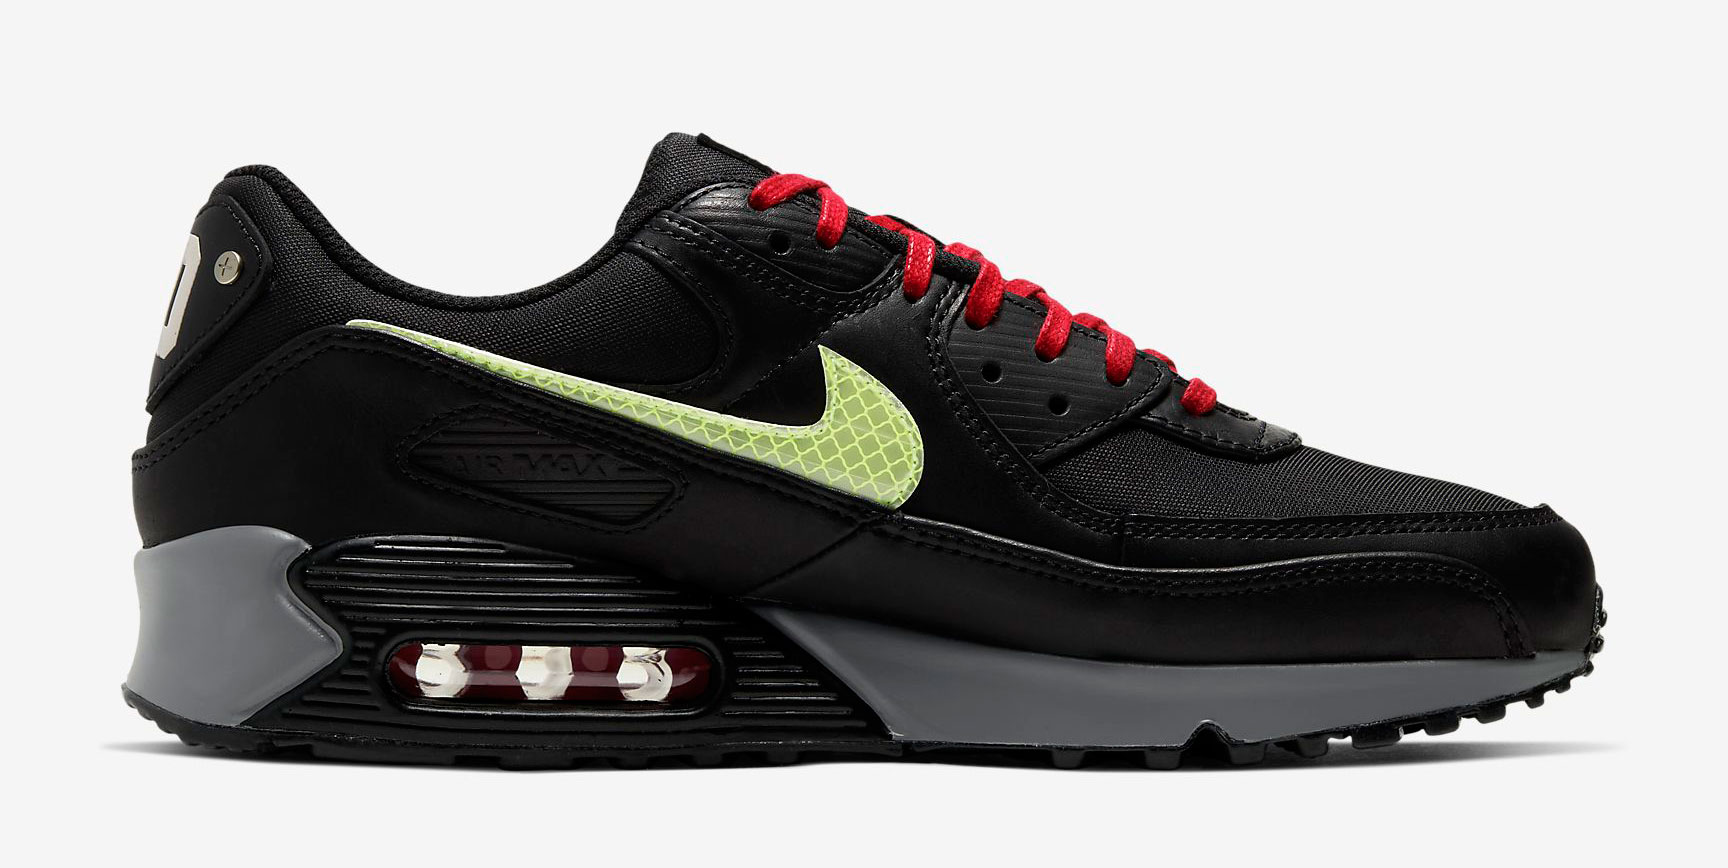 nike-air-max-90-fdny-release-date-3